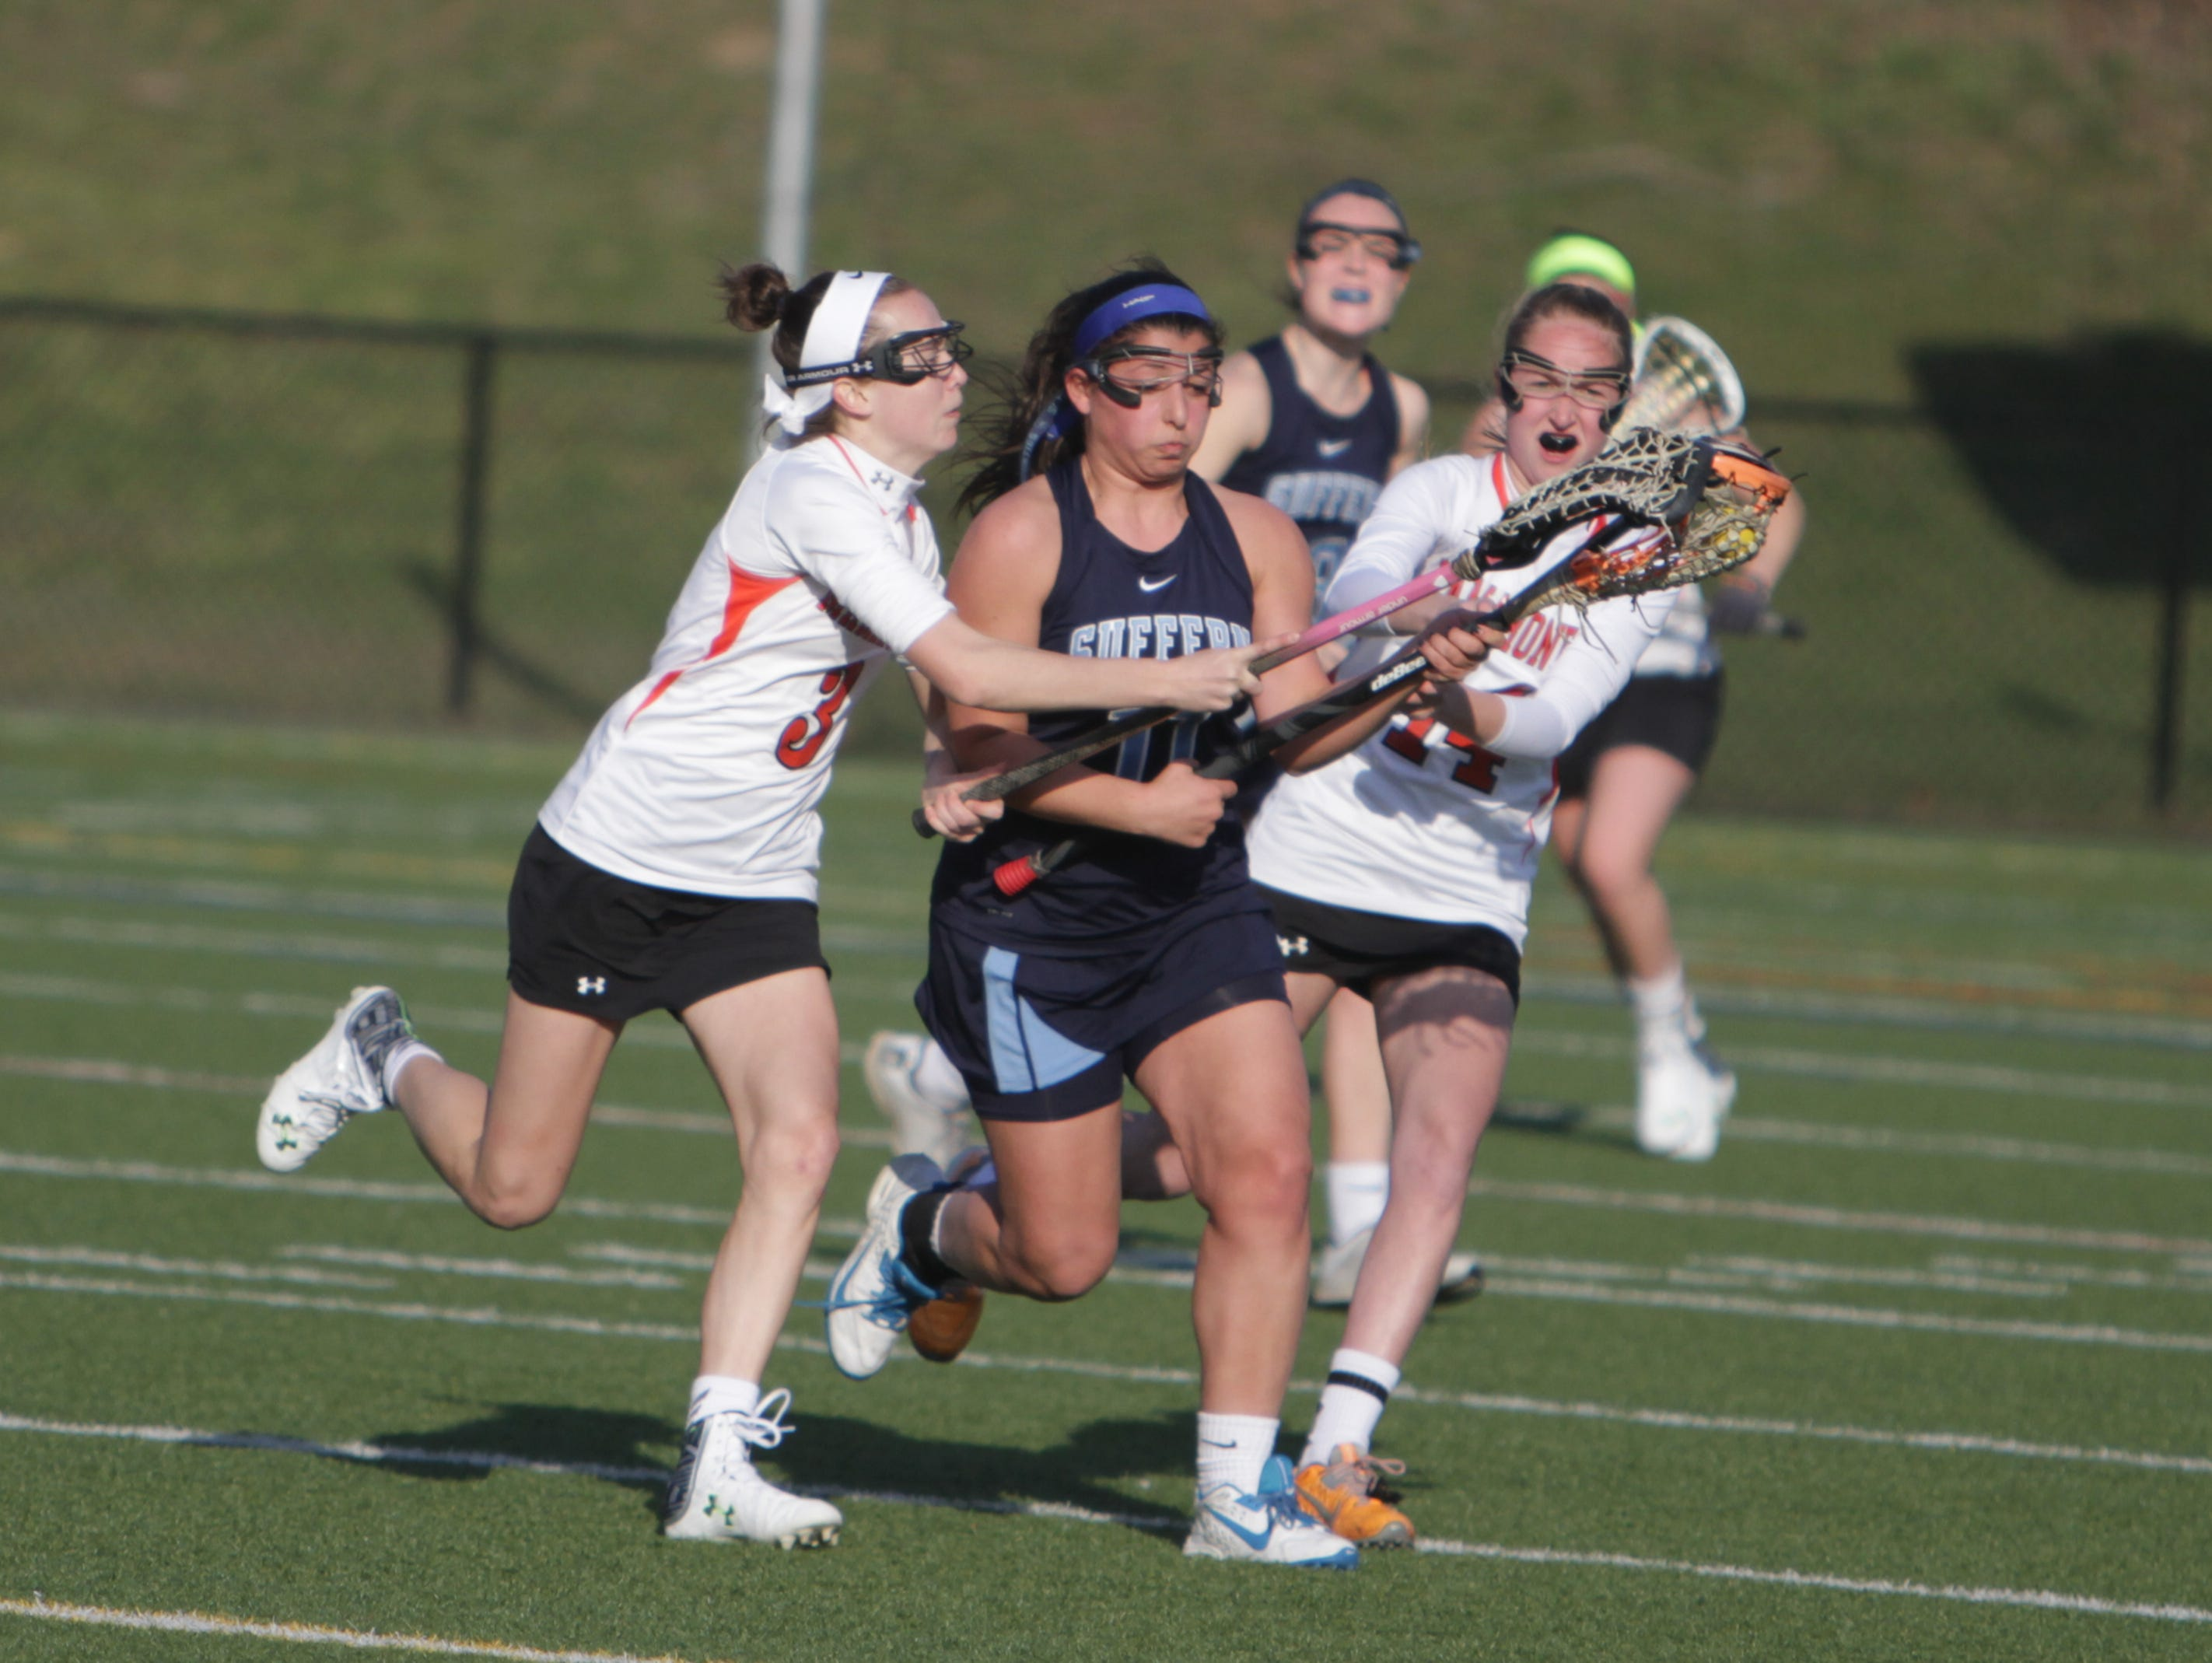 Suffern's Alli Iodice is defended on by Mamaroneck's Madeline Riodan (3) and Sophie Artz (14) during a Section 1 girls lacrosse game between Suffern and Mamaroneck at Mamaroneck High School on Tuesday, March 22nd, 2016. Suffern won 16-3.